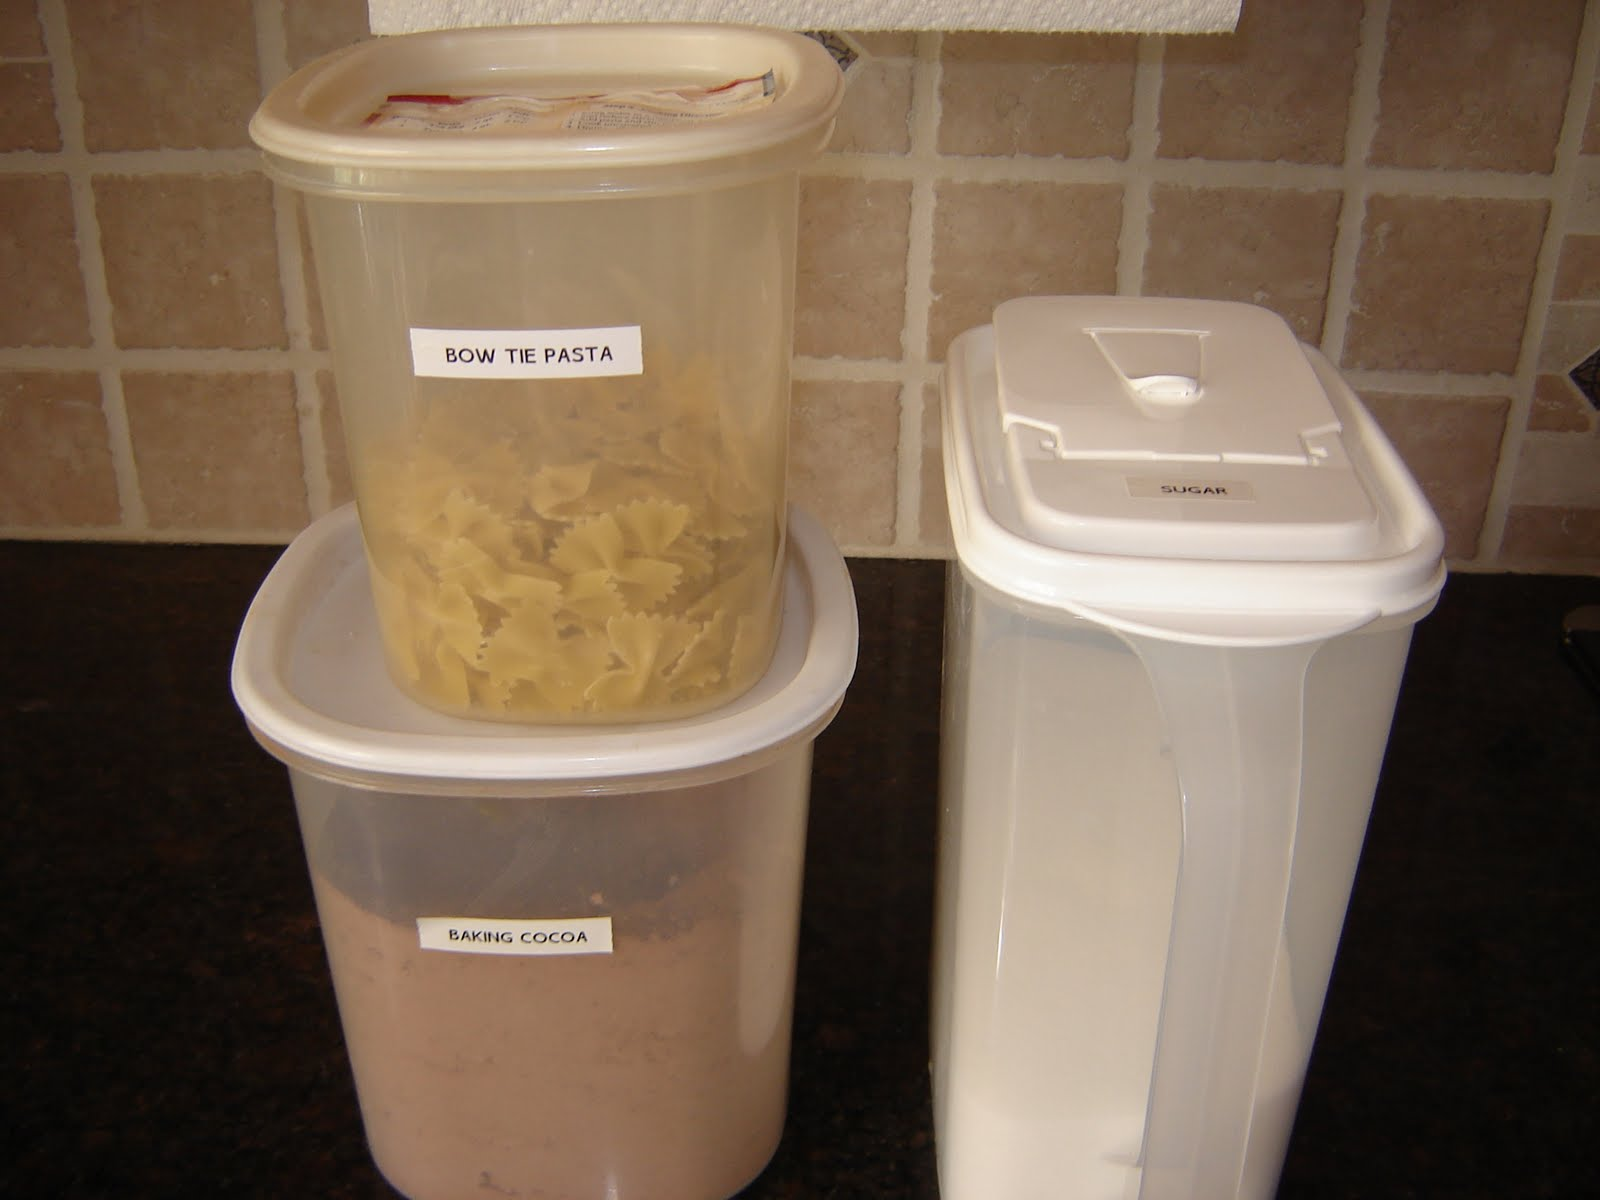 Prepared LDS Family Food Storage Tip Containers for Dry Ingredients